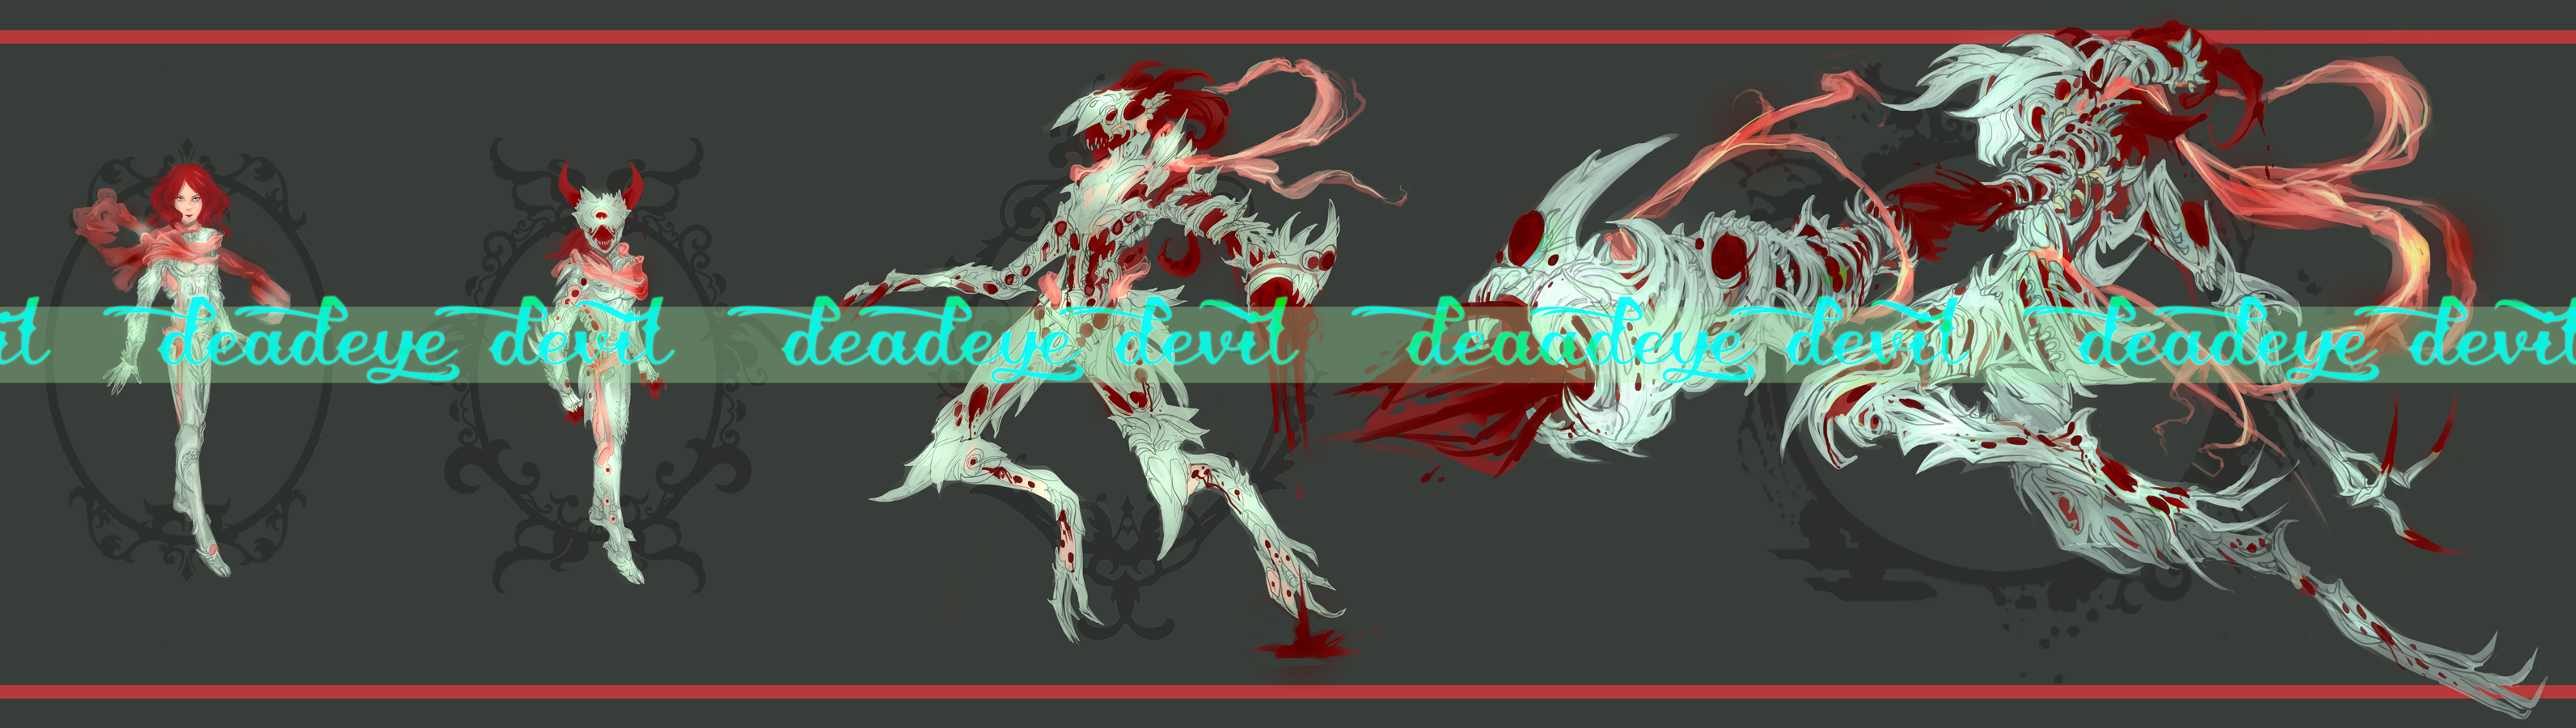 DEADEYE DEVIl adopt [CUSTOM] by ensoul